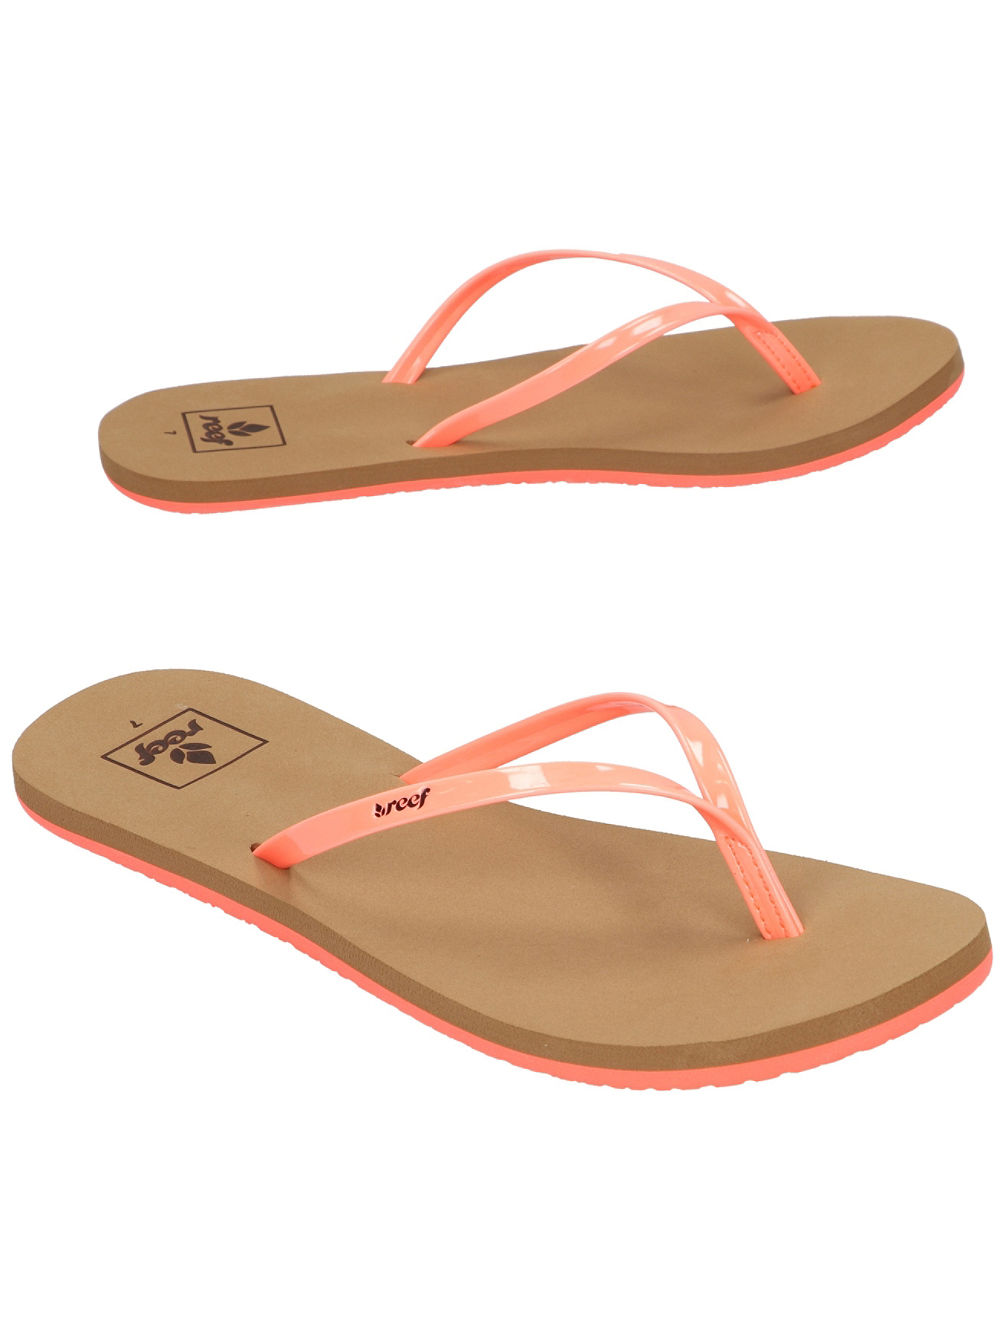 f8d347bd2d36 Buy Reef Bliss Sandals online at Blue Tomato